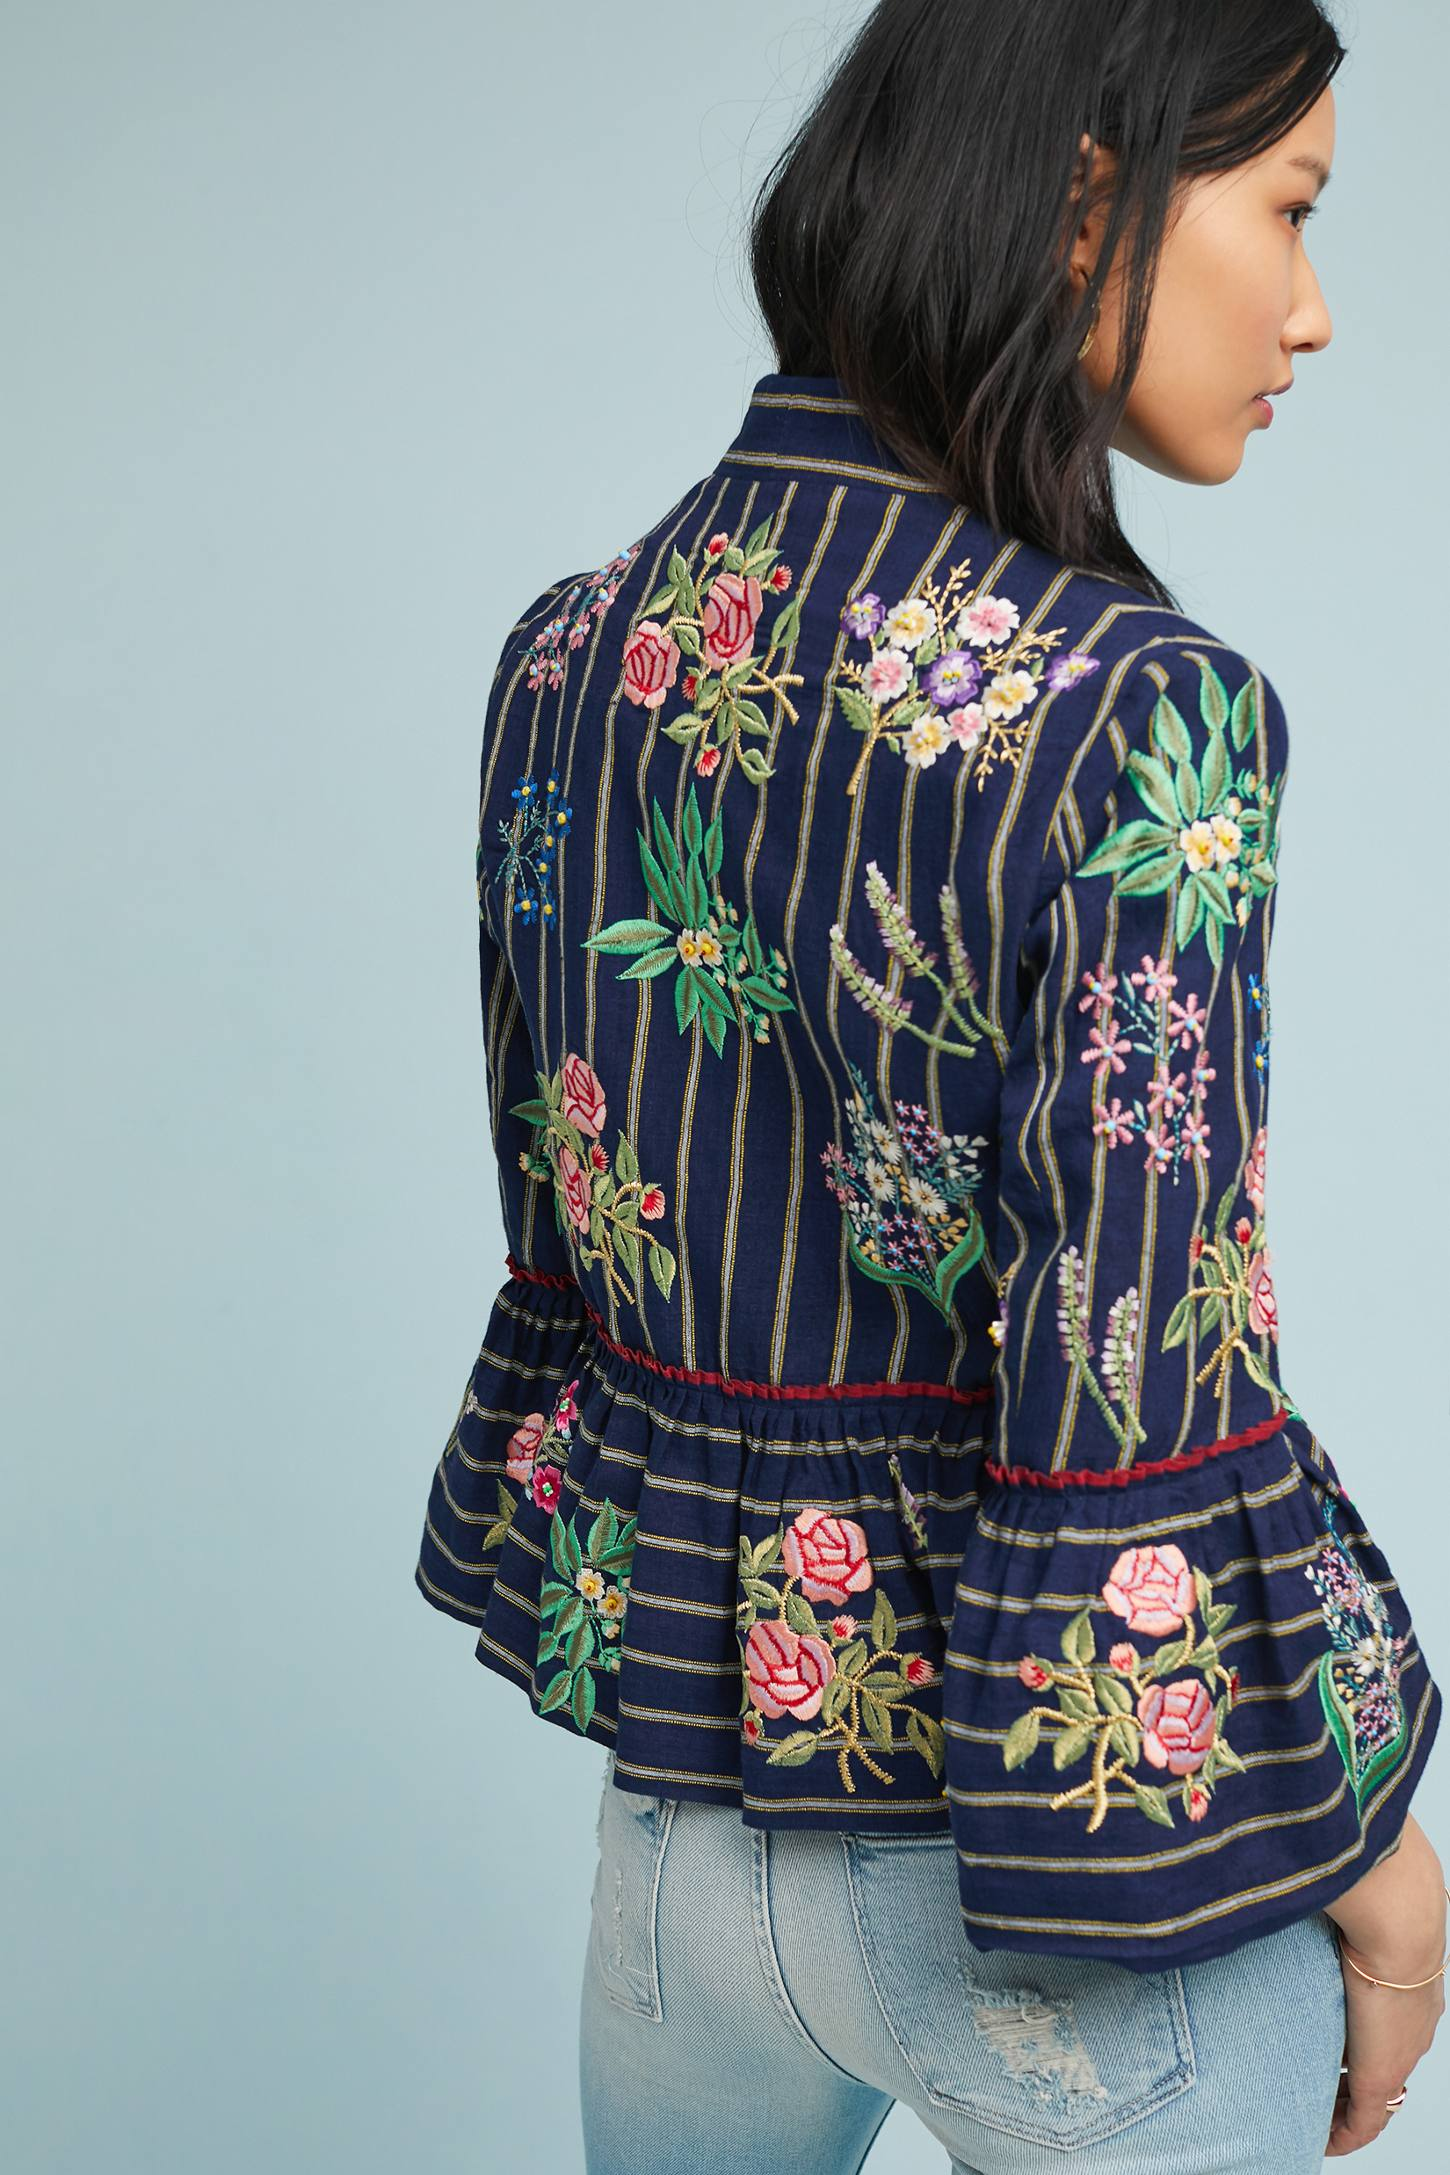 Floral Embroidered Peplum Jacket Navy Blue Stripes